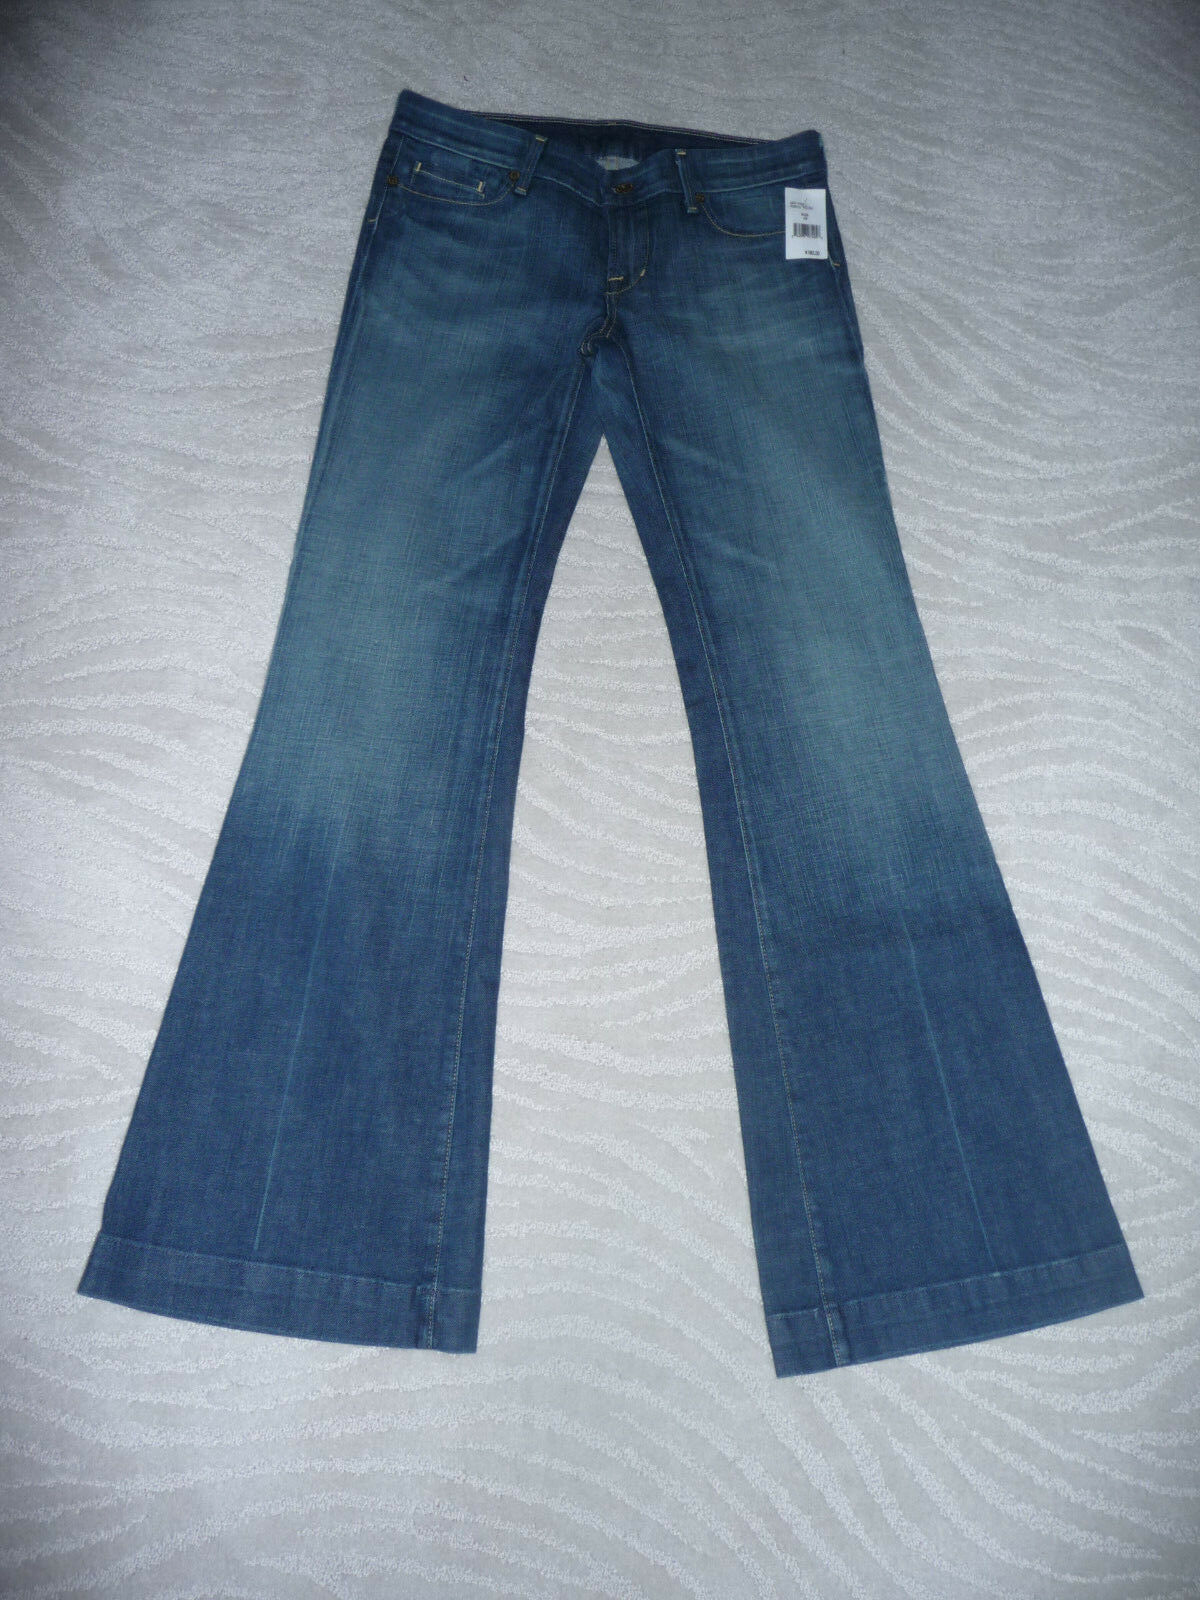 Citizens of Humanity,blueE,Low waist full leg Stretch,JEANS29De In.34  USA  180